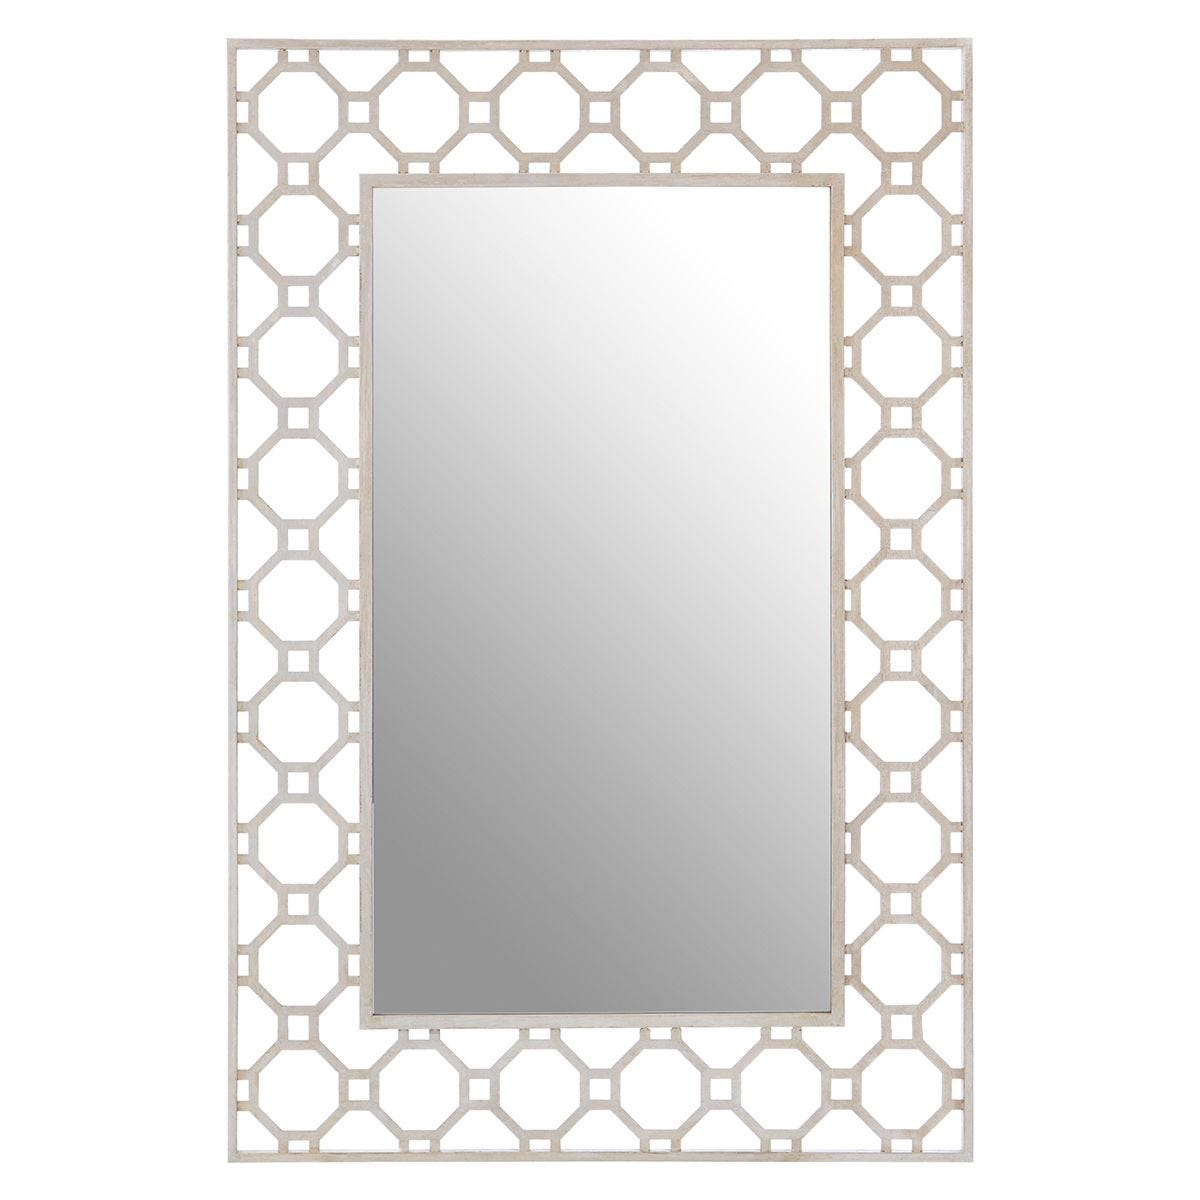 Premier Housewares Zariah Wall Mirror - Antique Silver Finish